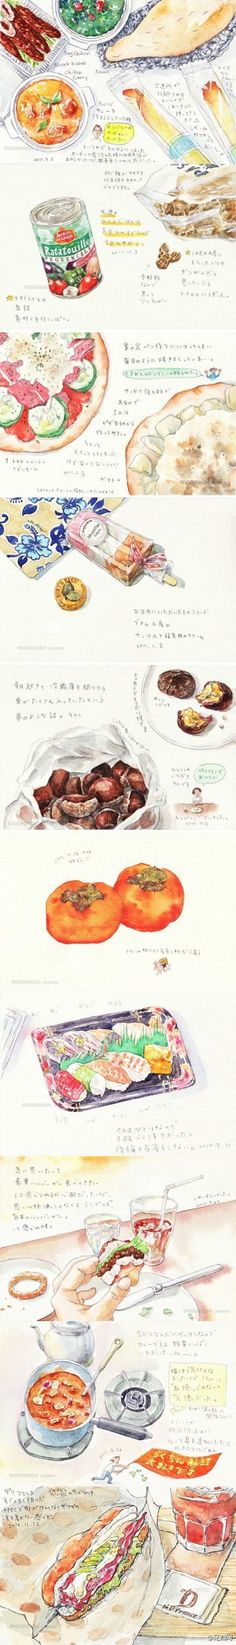 Imagine how delicious looking and beautiful a food drawing with these illustrations in them every day would be ^_^ Food Drawing, Painting & Drawing, Cute Illustration, Watercolor Illustration, Dm Poster, Watercolor Food, Watercolour, Pinterest Instagram, Food Sketch